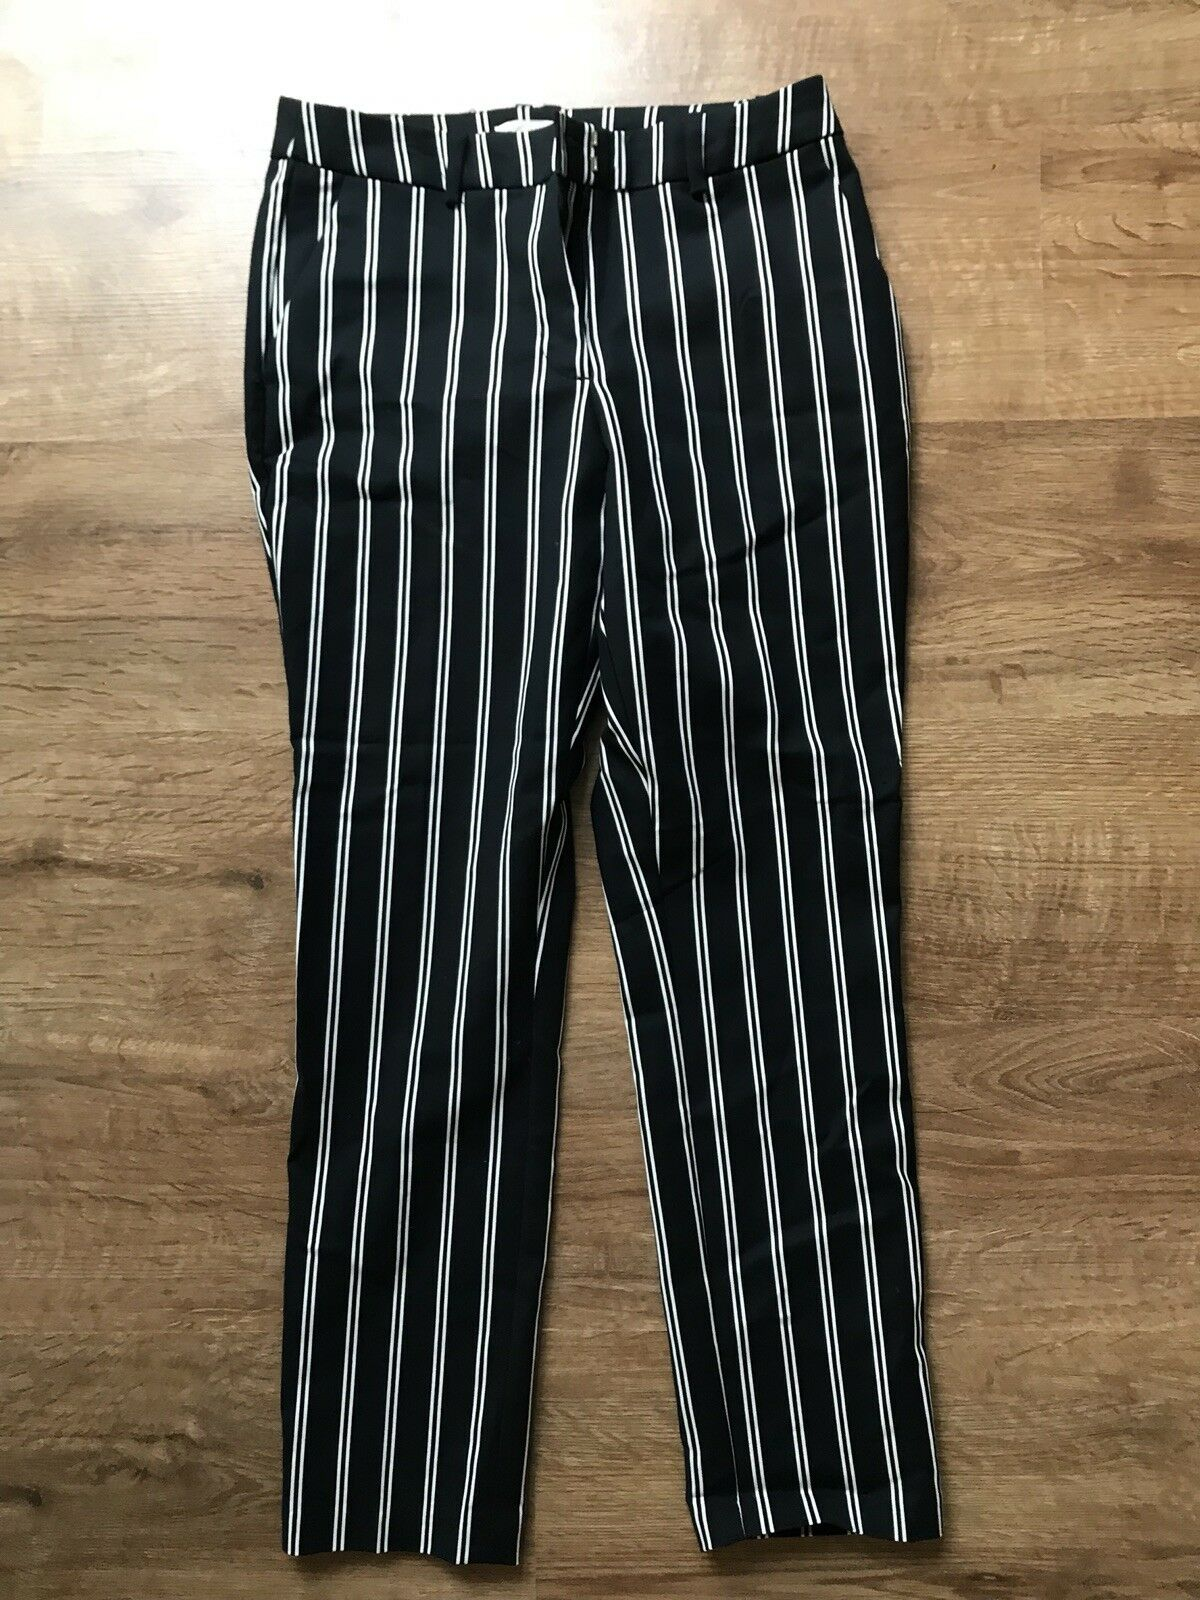 Womens Ladies Girls greenical Striped Smart Elegant Trousers Size 8 UK H&M